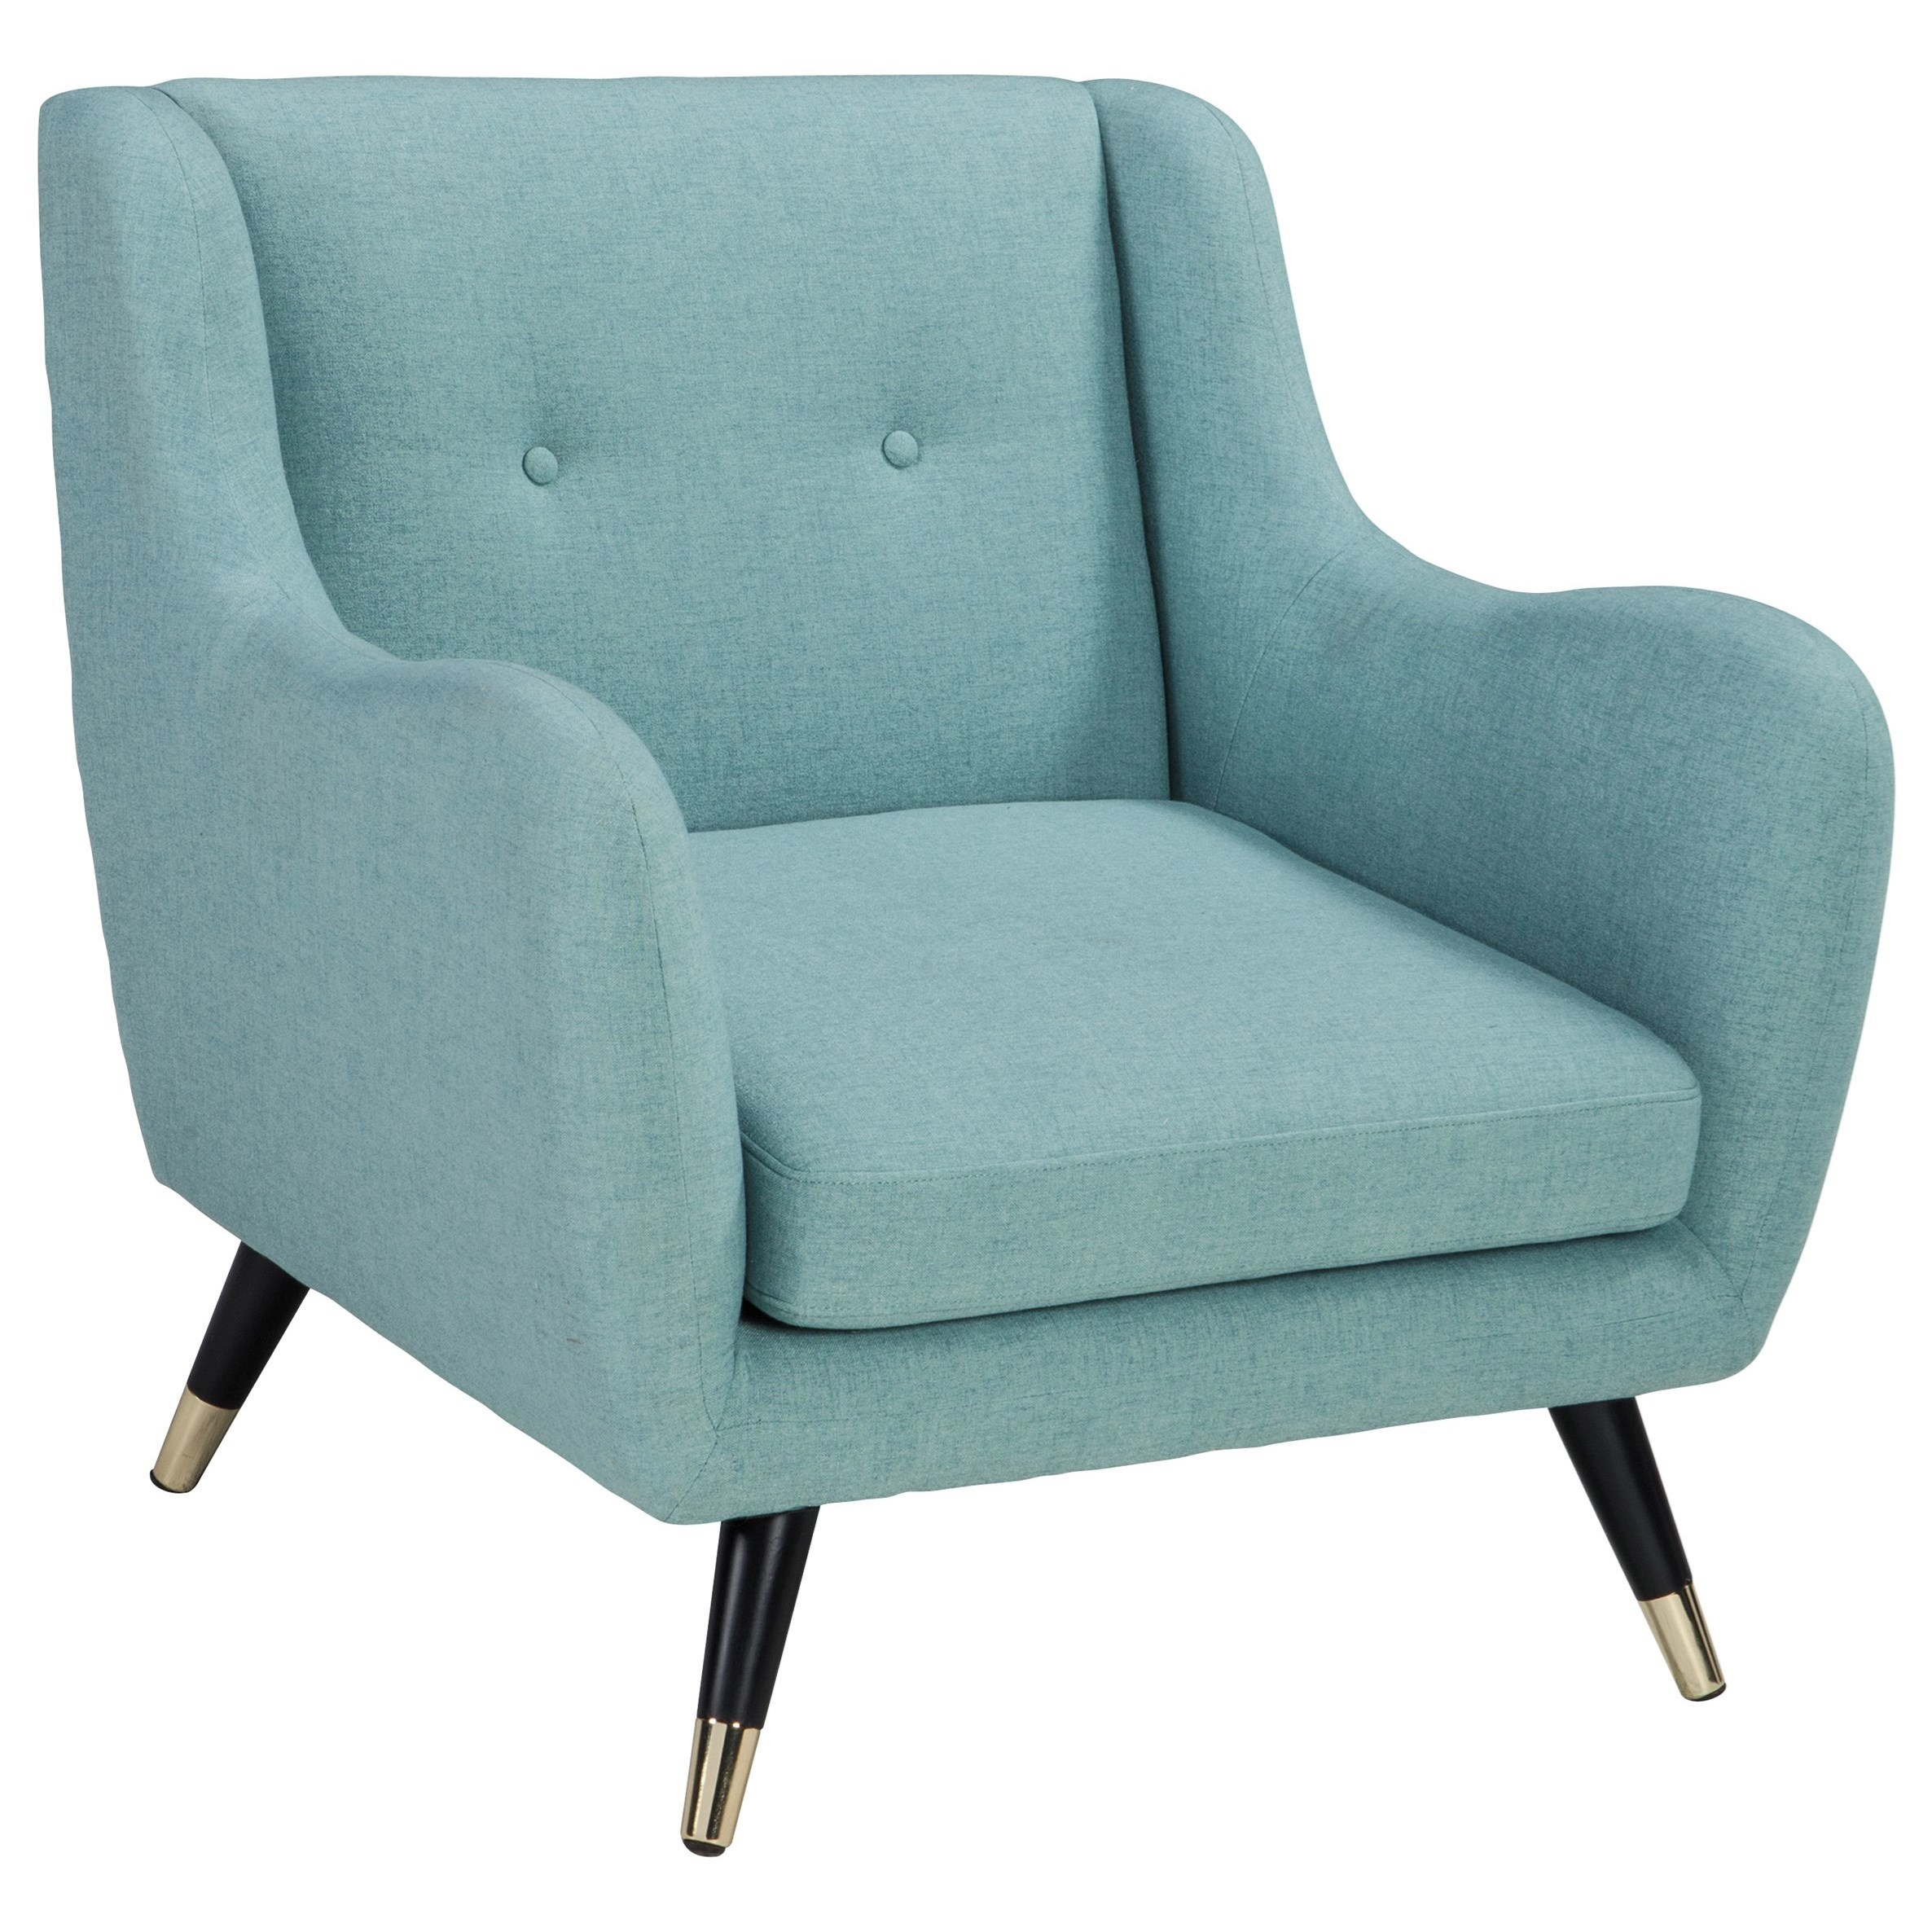 Signature Design by Ashley Menga Mid Century Modern Accent